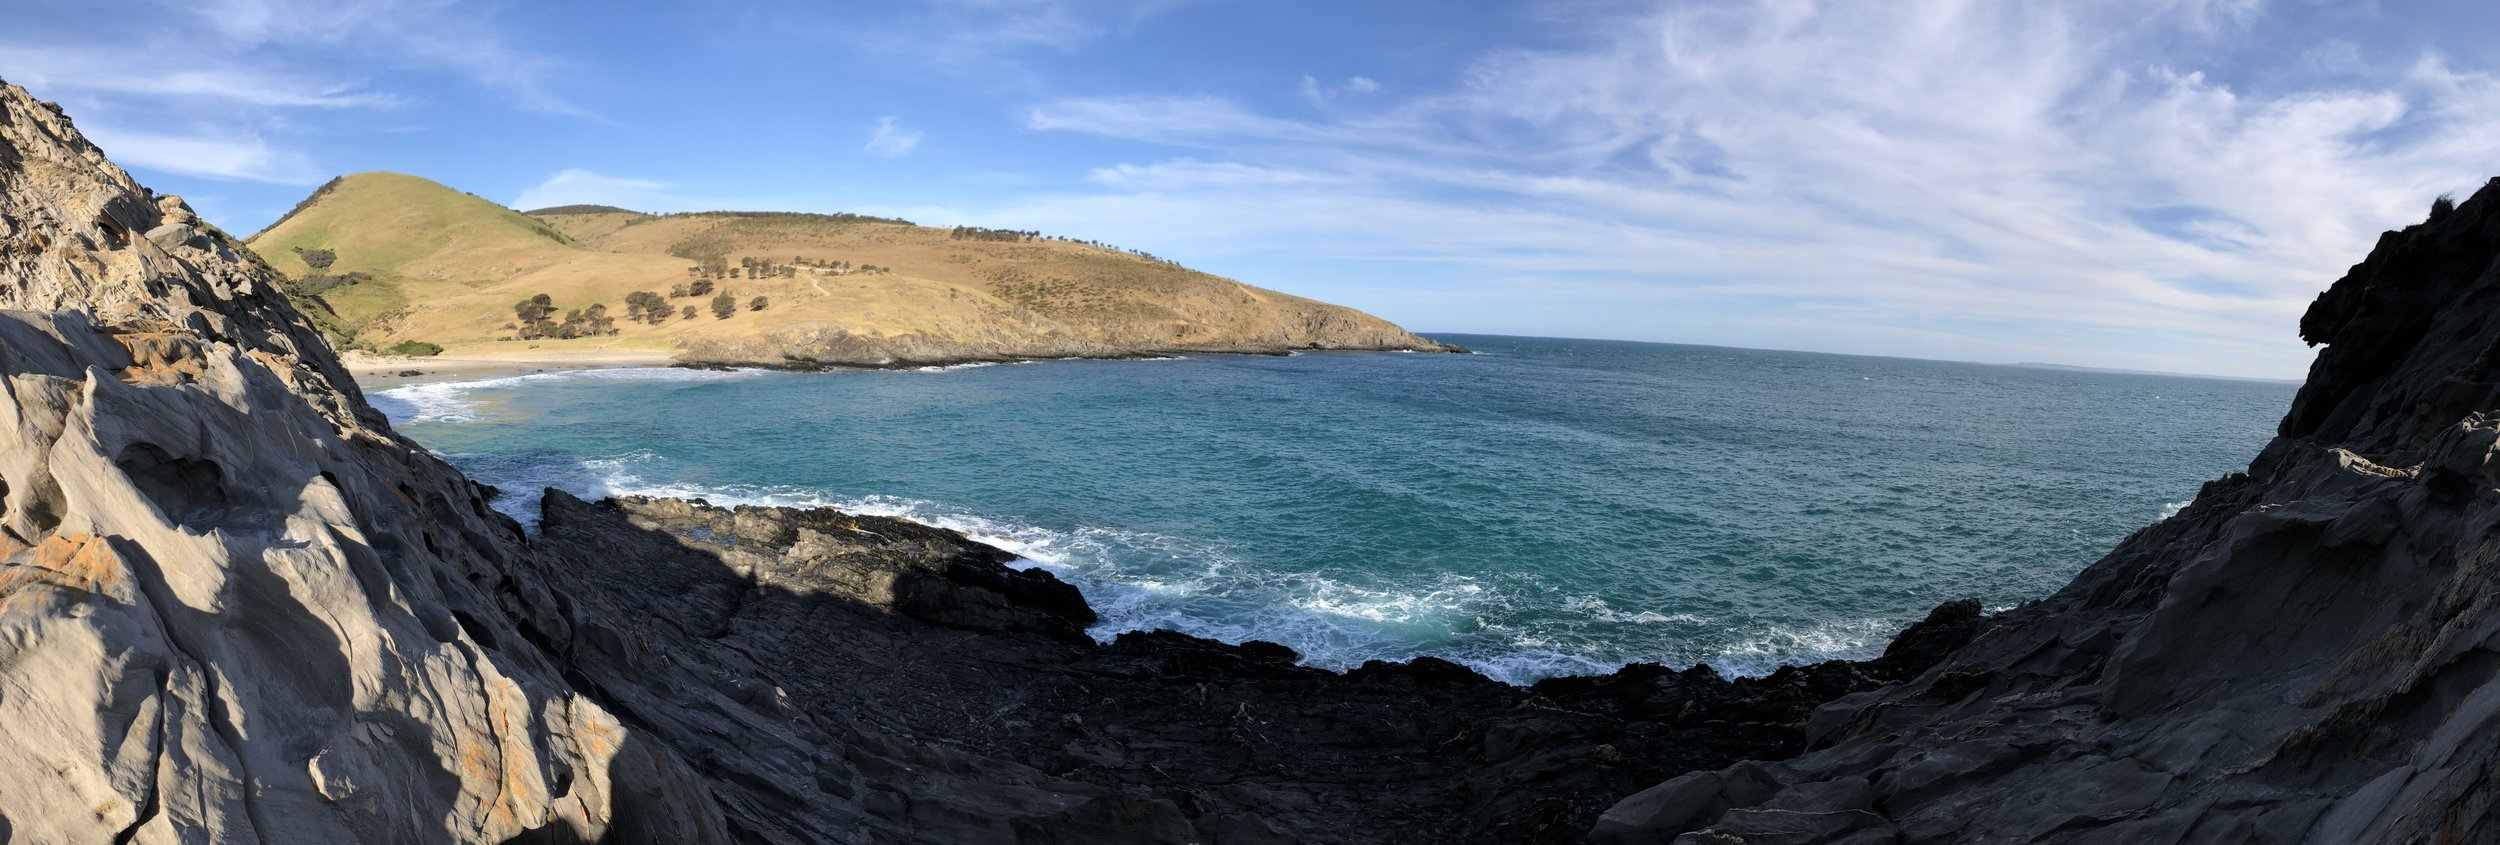 View from the rock mountain on the secluded beach (I was too chicken to climb to the top).